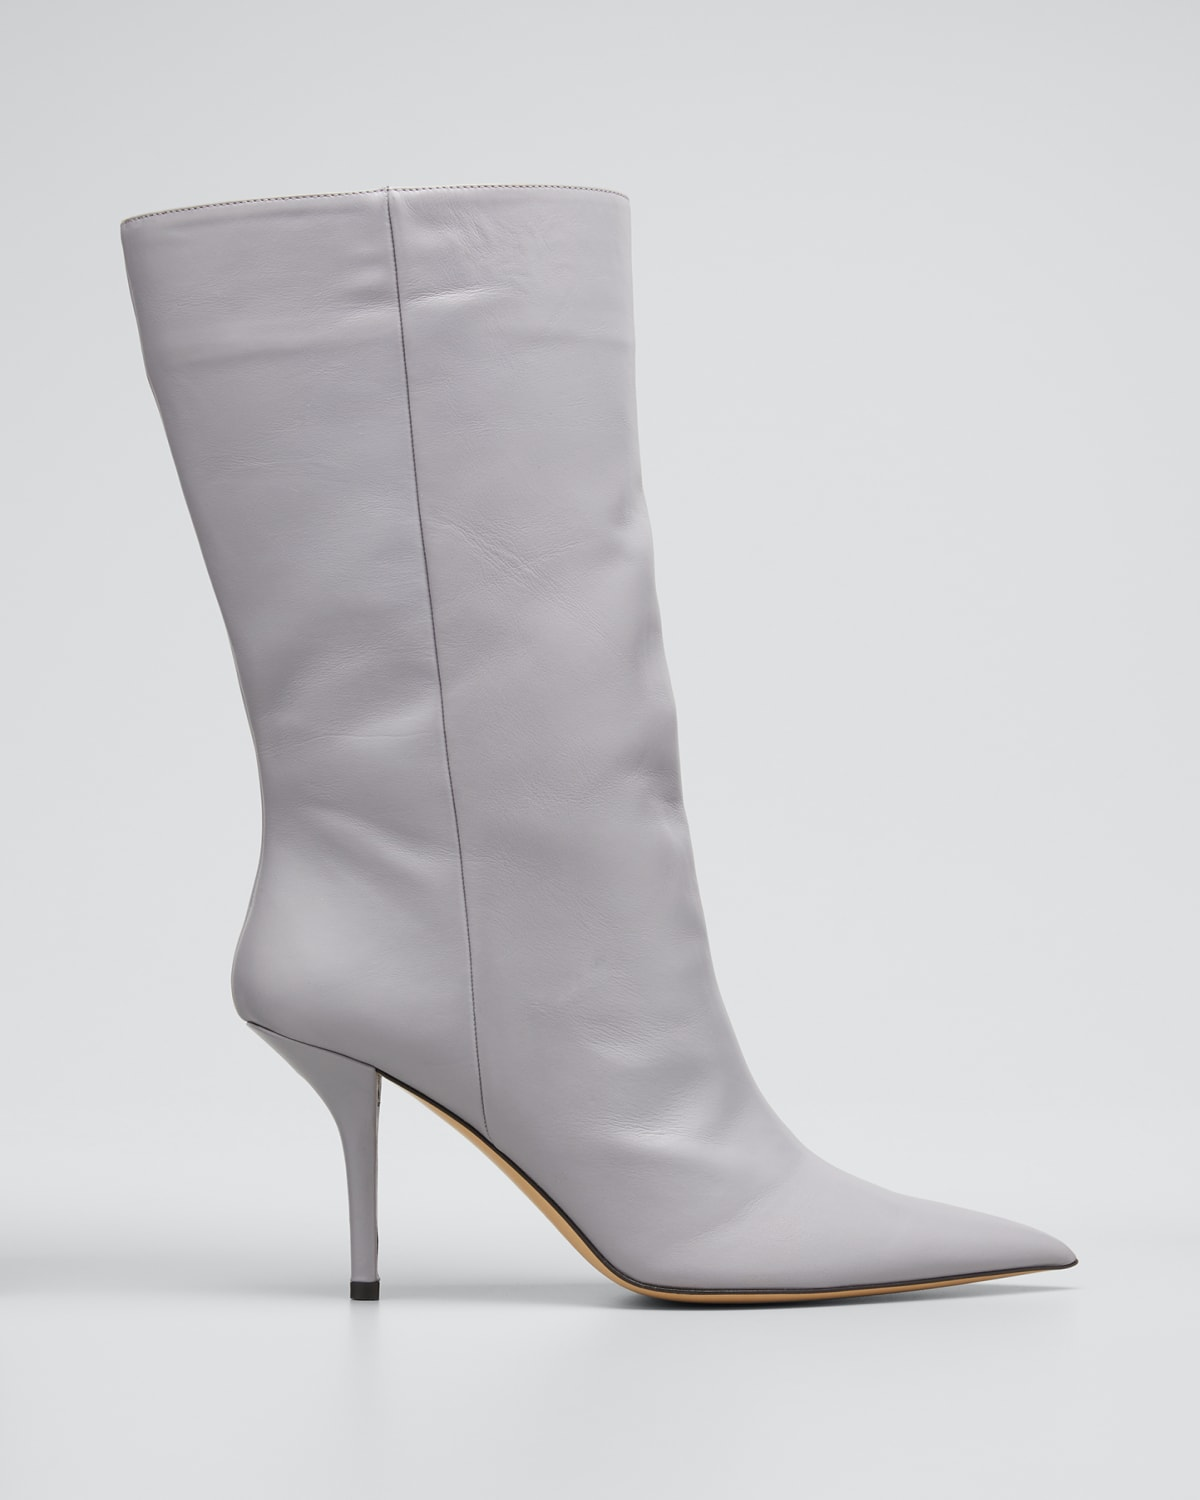 85mm Leather Stiletto Mid-Calf Boots